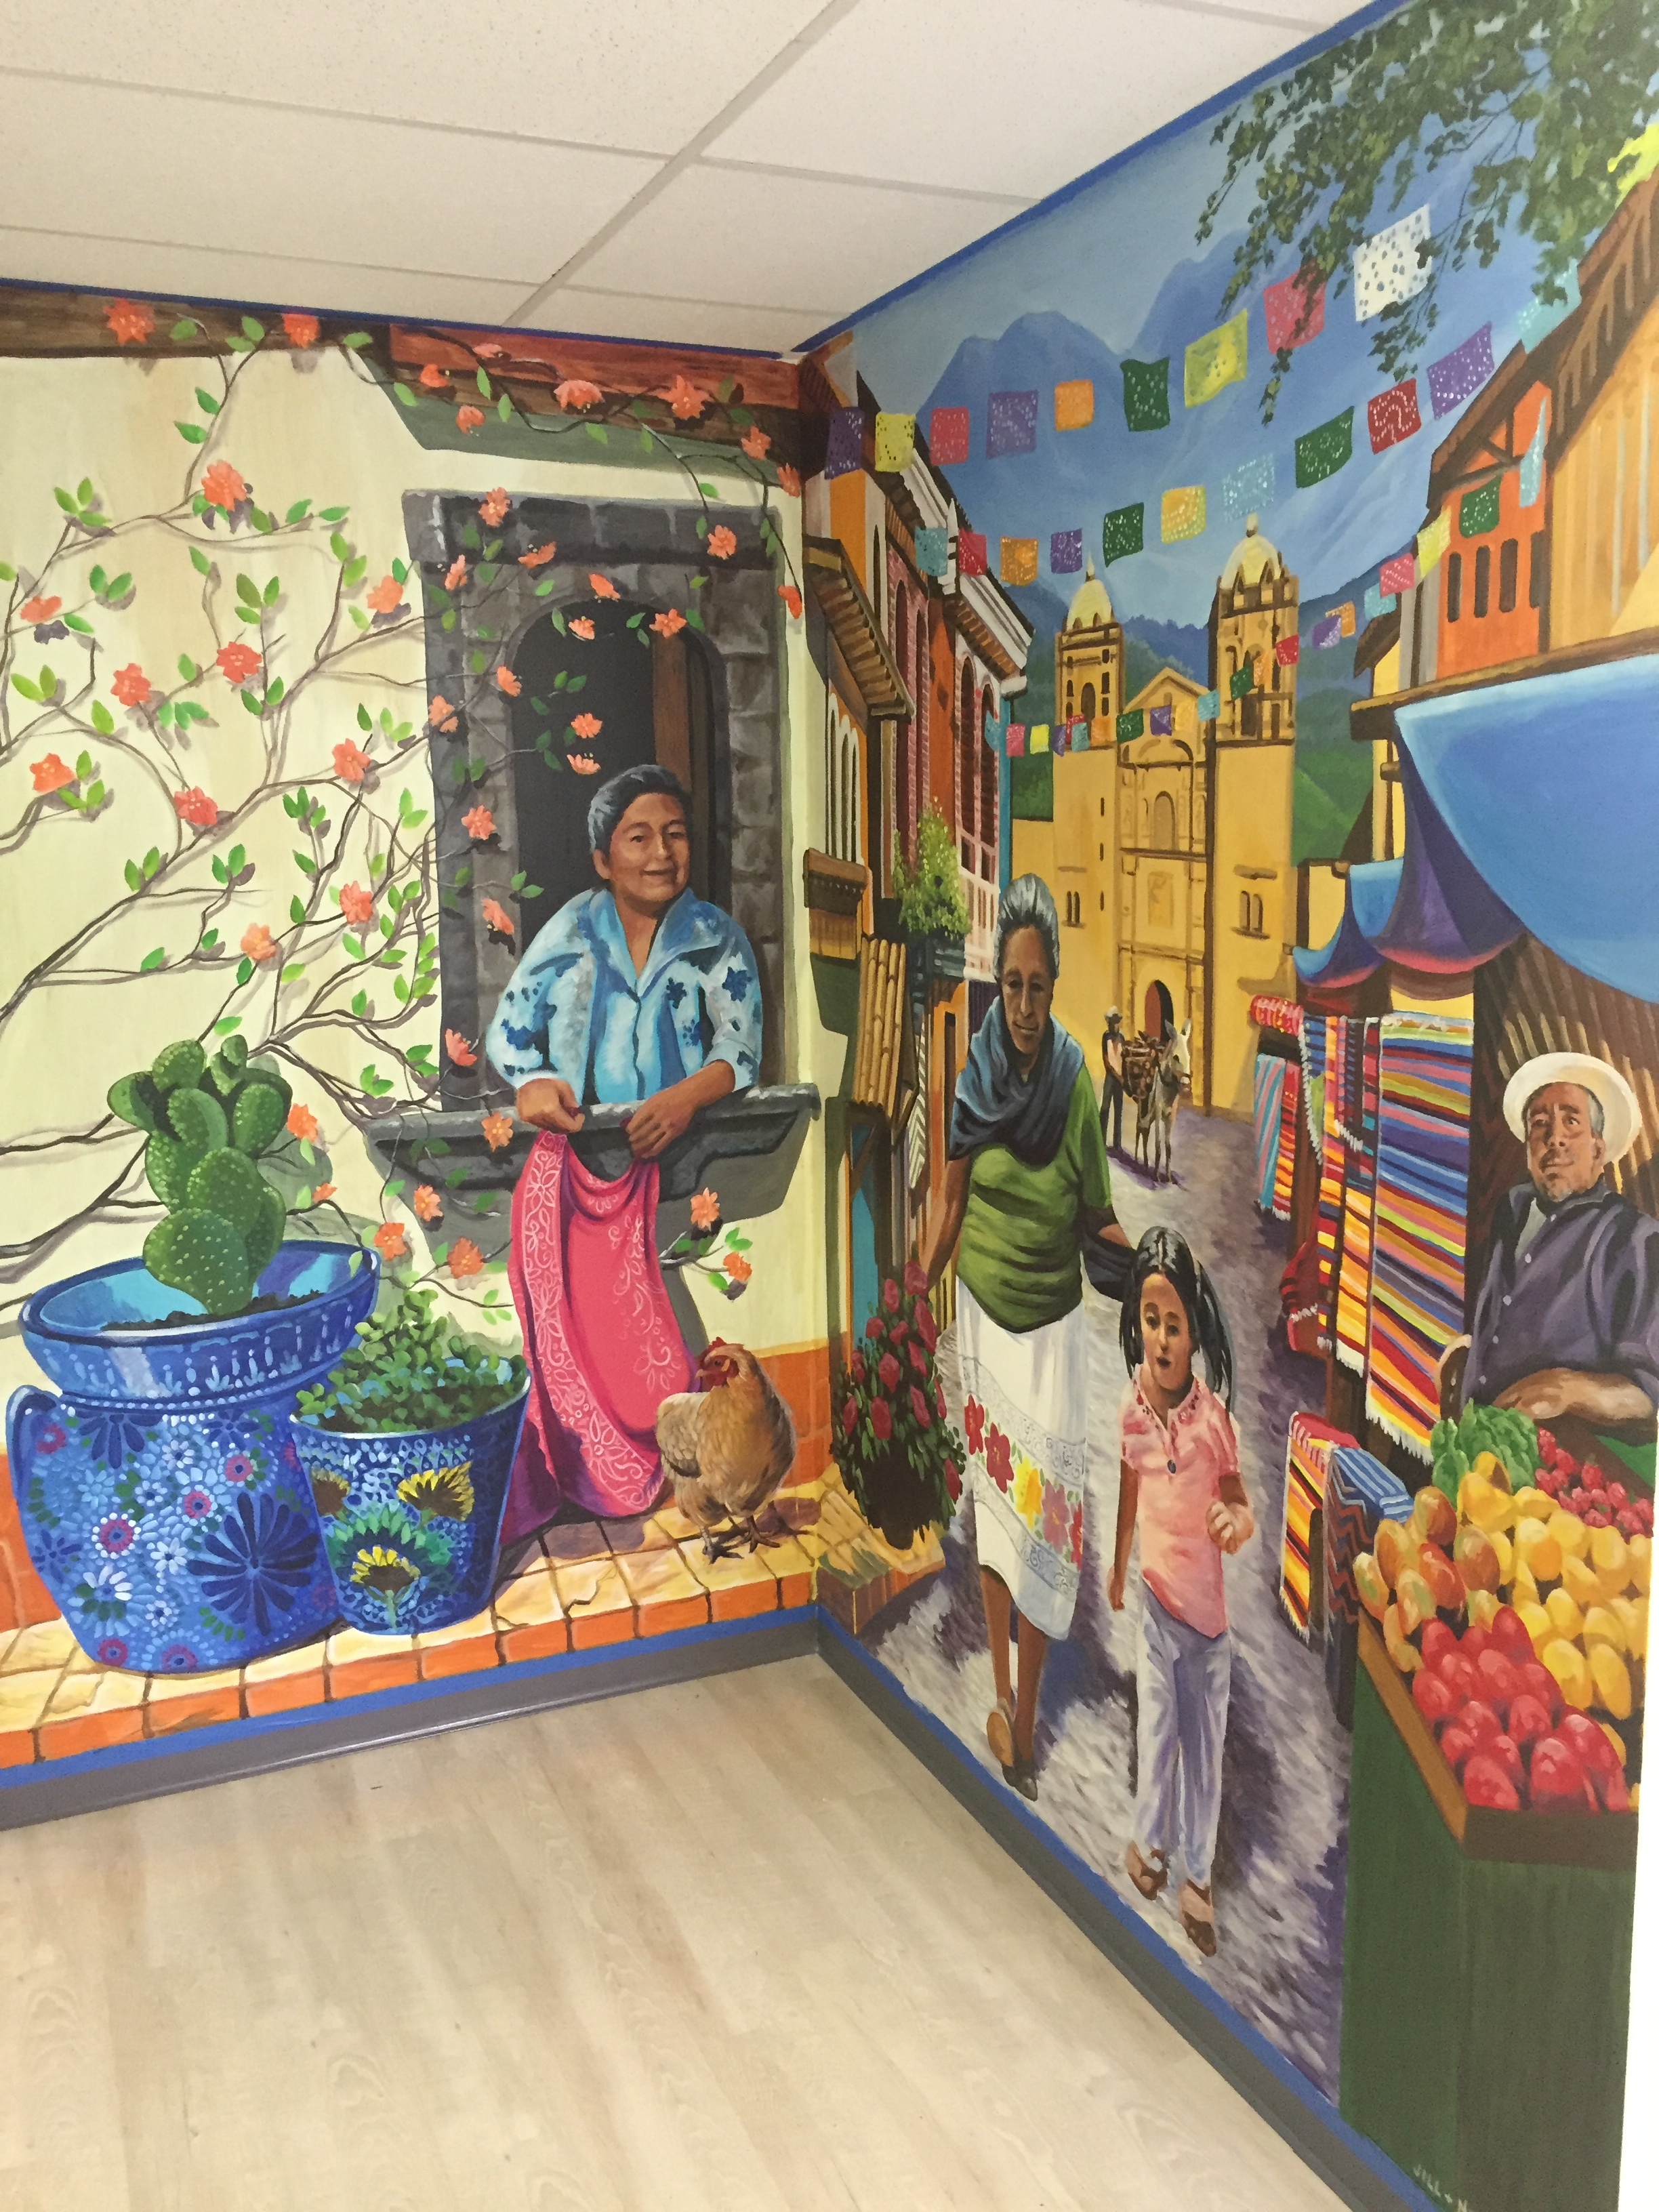 Spreading the mural across a corner of the room helps to make it feel more immersive. From the right viewpoint, you can almost hear the church bells and smell fresh mango from the fruit stand.